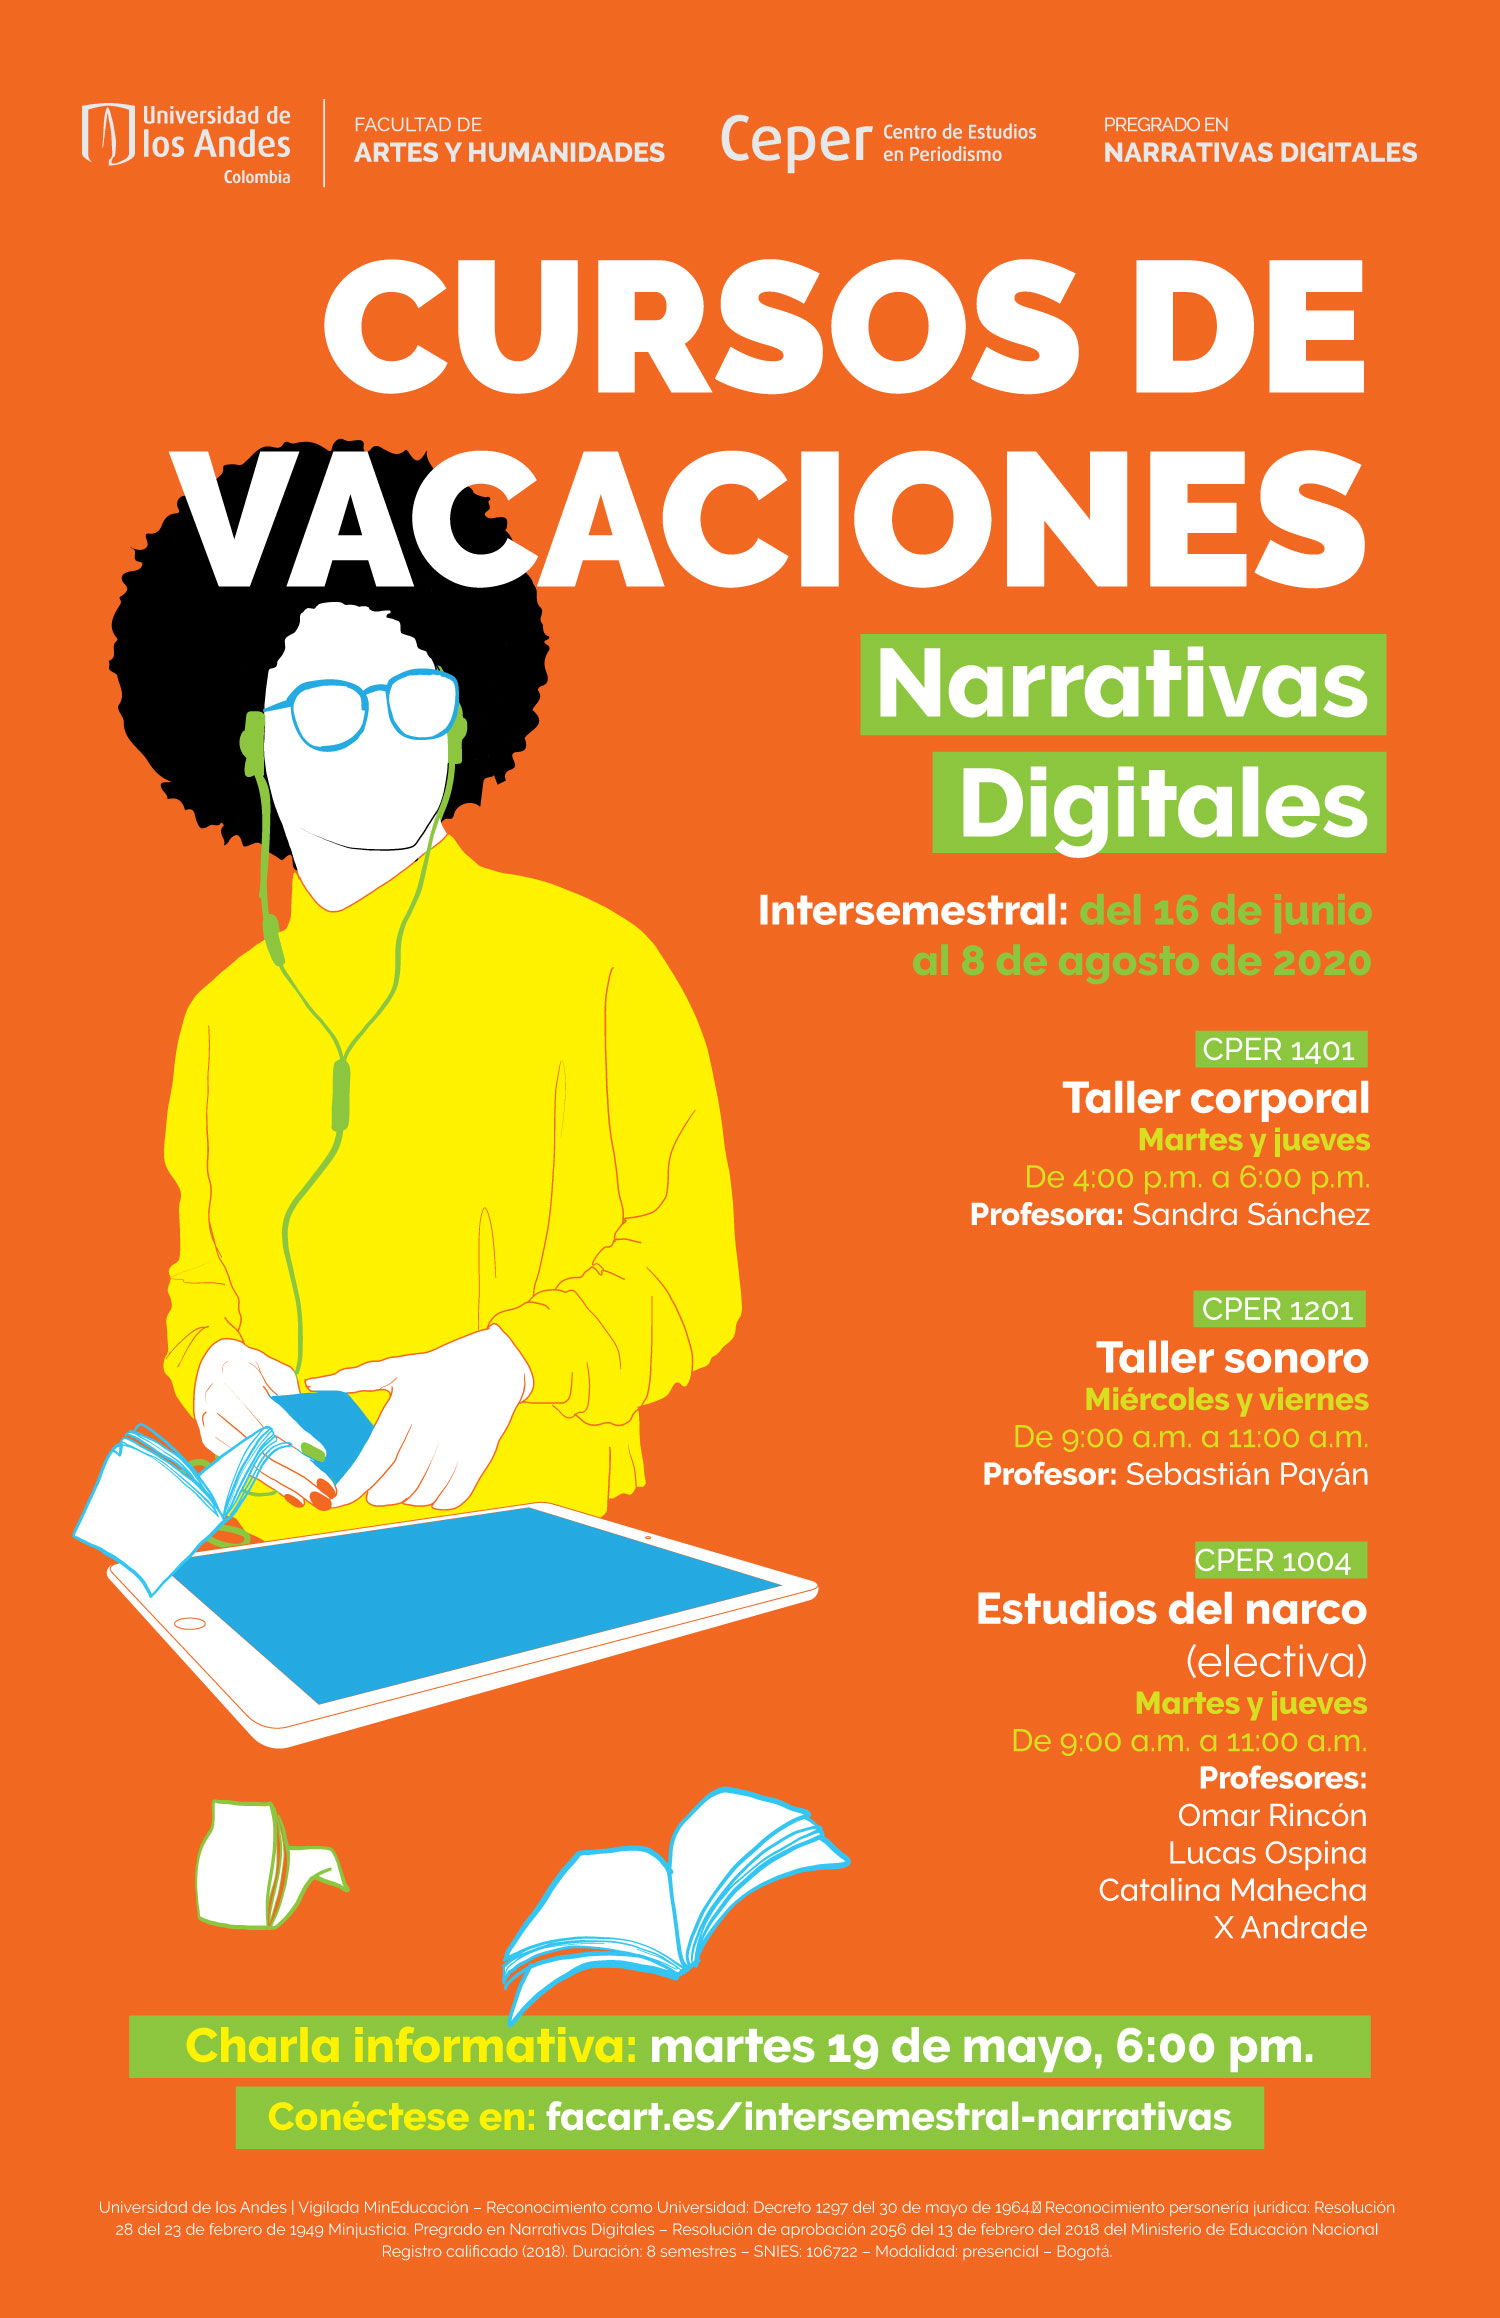 Cursos de vacaciones Narrativas Digitales 2020-19